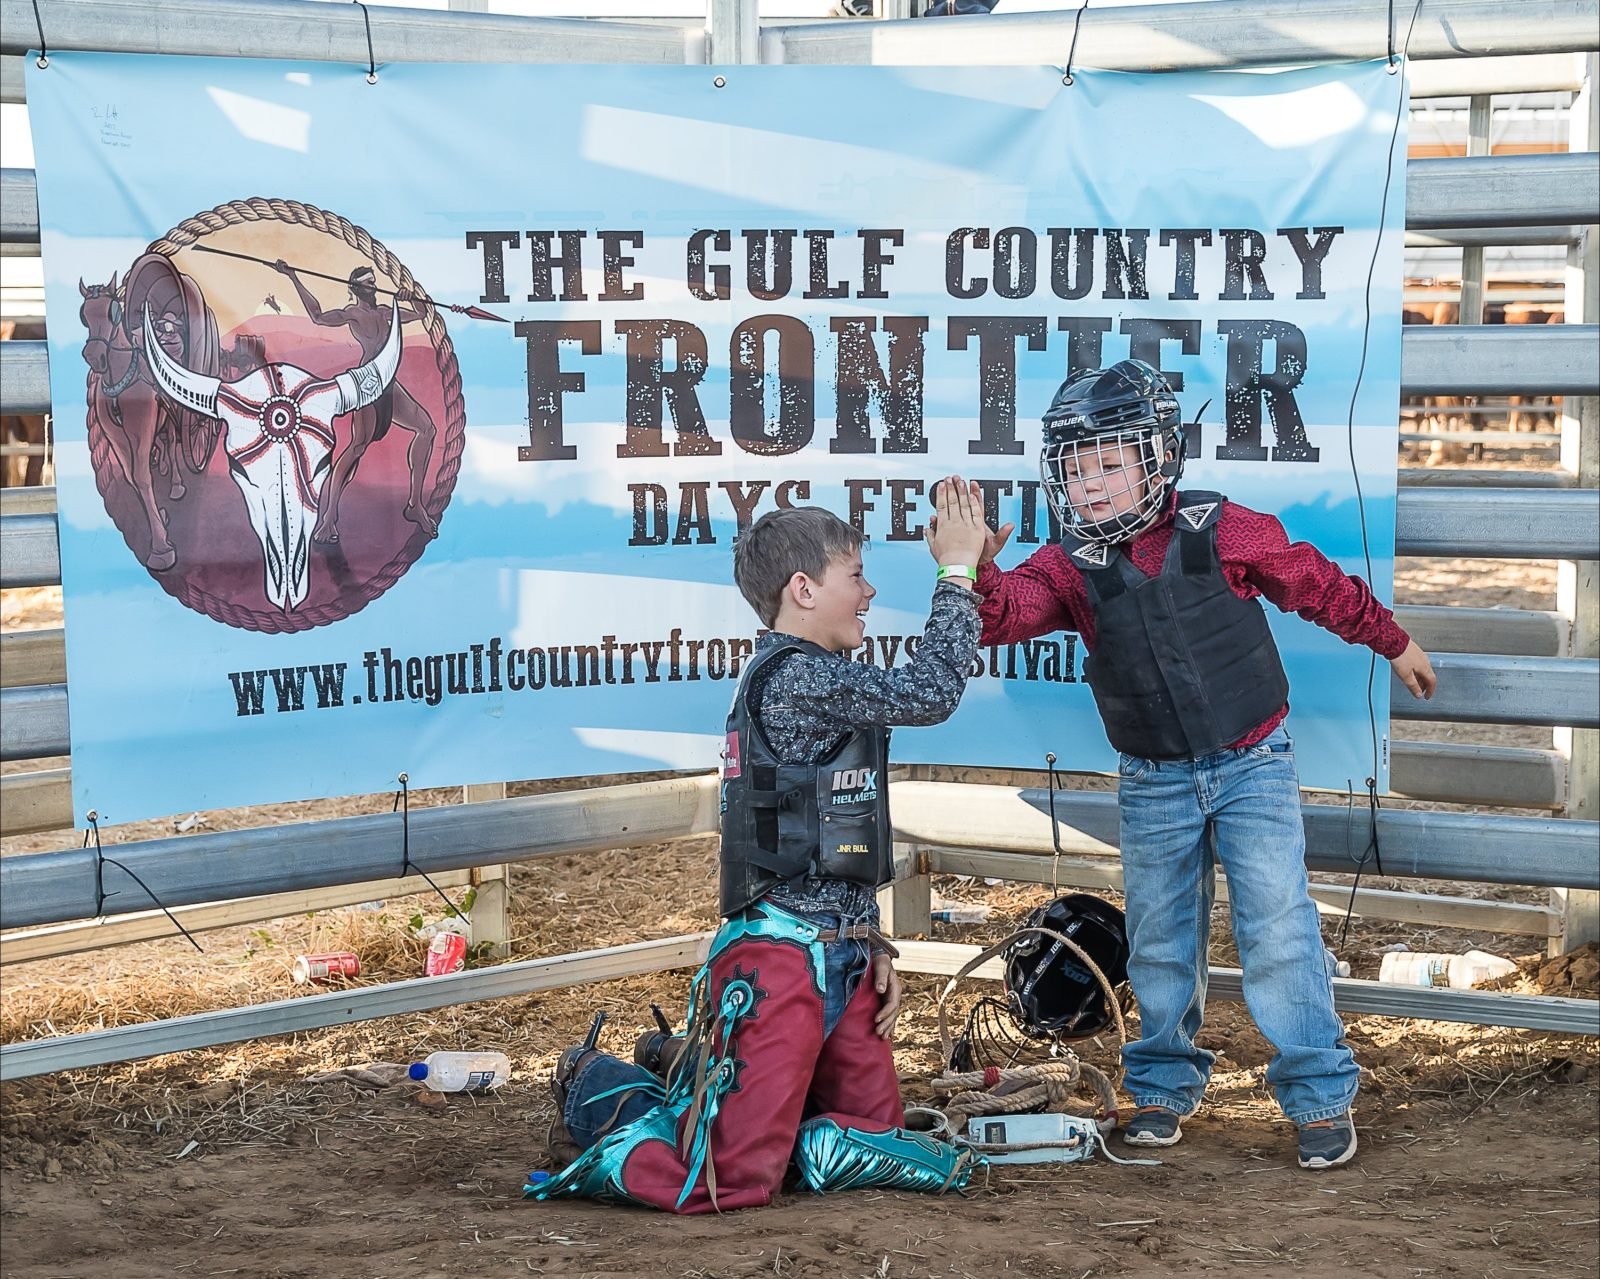 The Gulf Country Frontier Days Festival